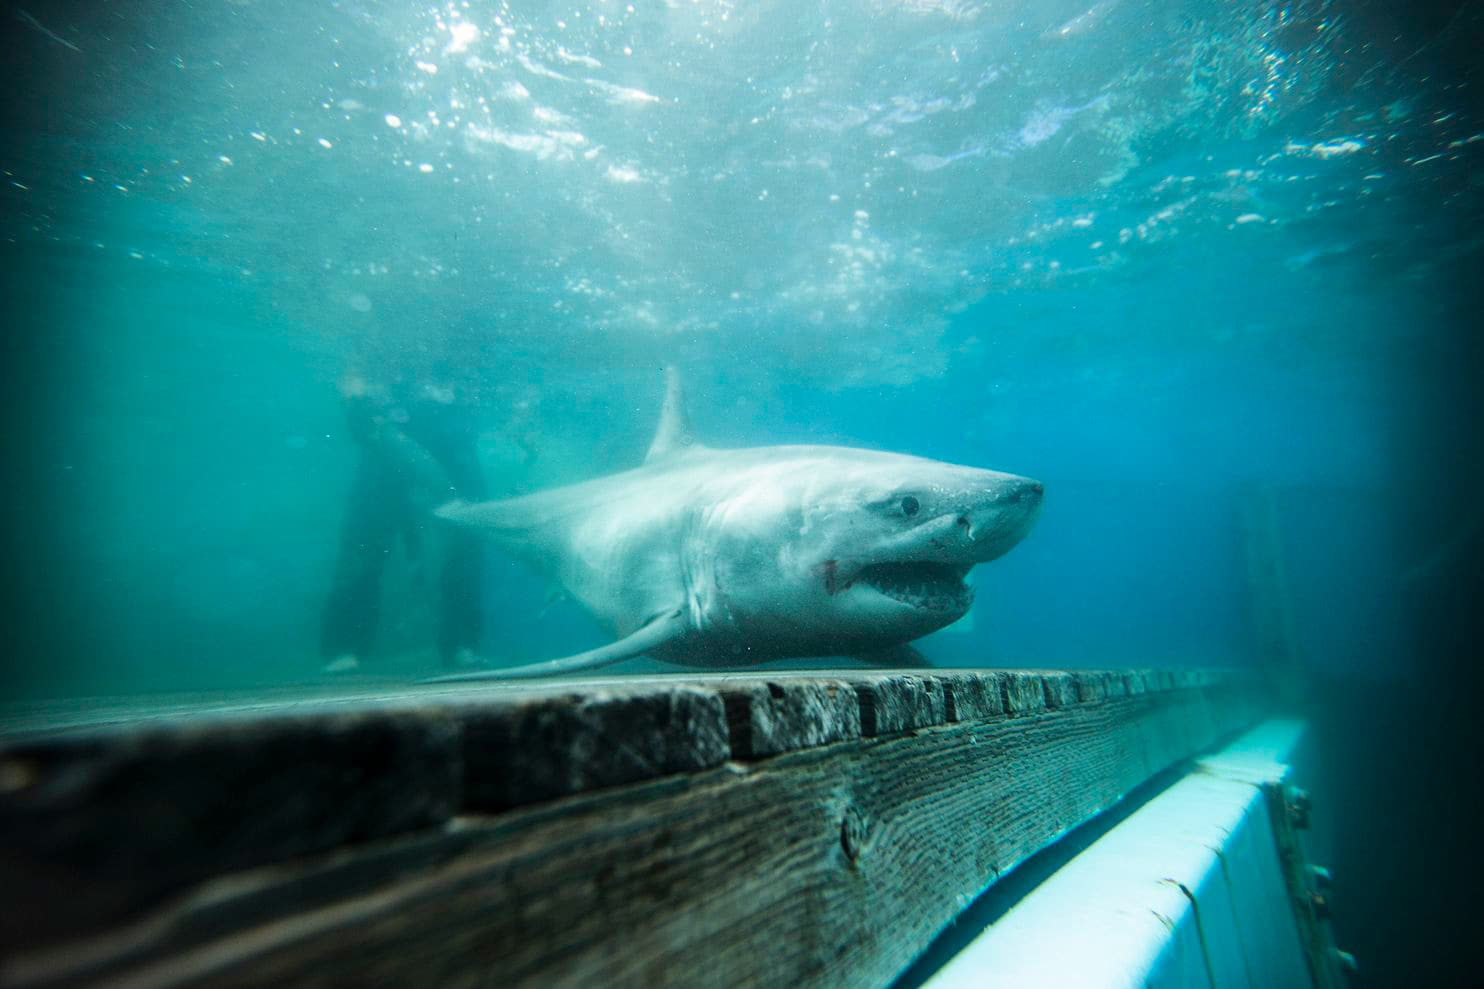 A great white shark was tracked in Long Island Sound for the first time. That's good news.